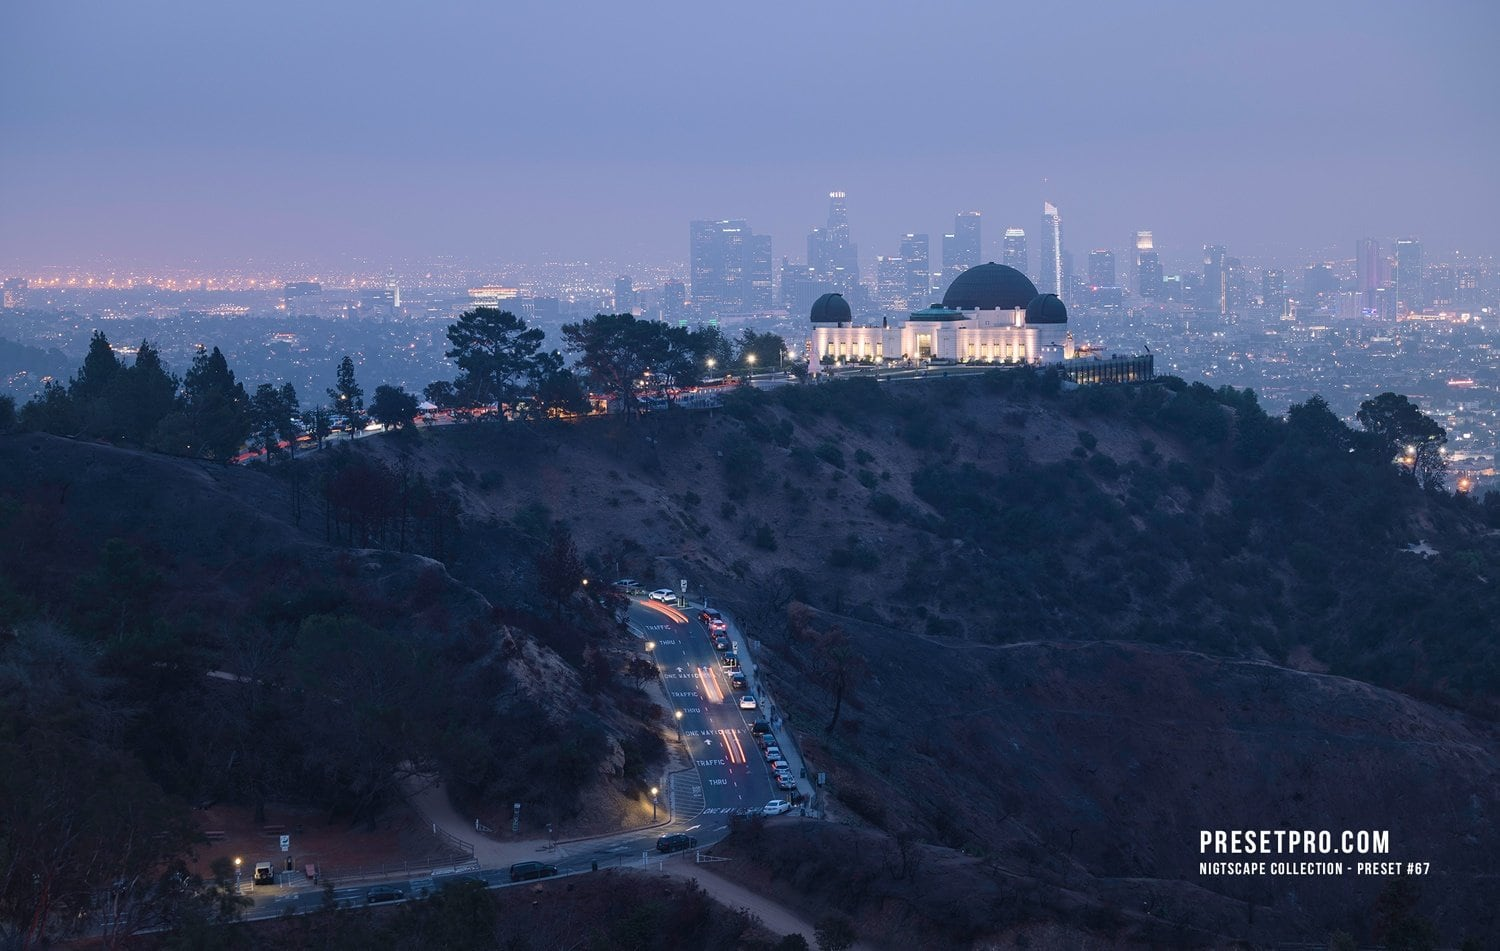 Creative Flow Lightroom Presets and Profiles Hollywood Hills C011-P67